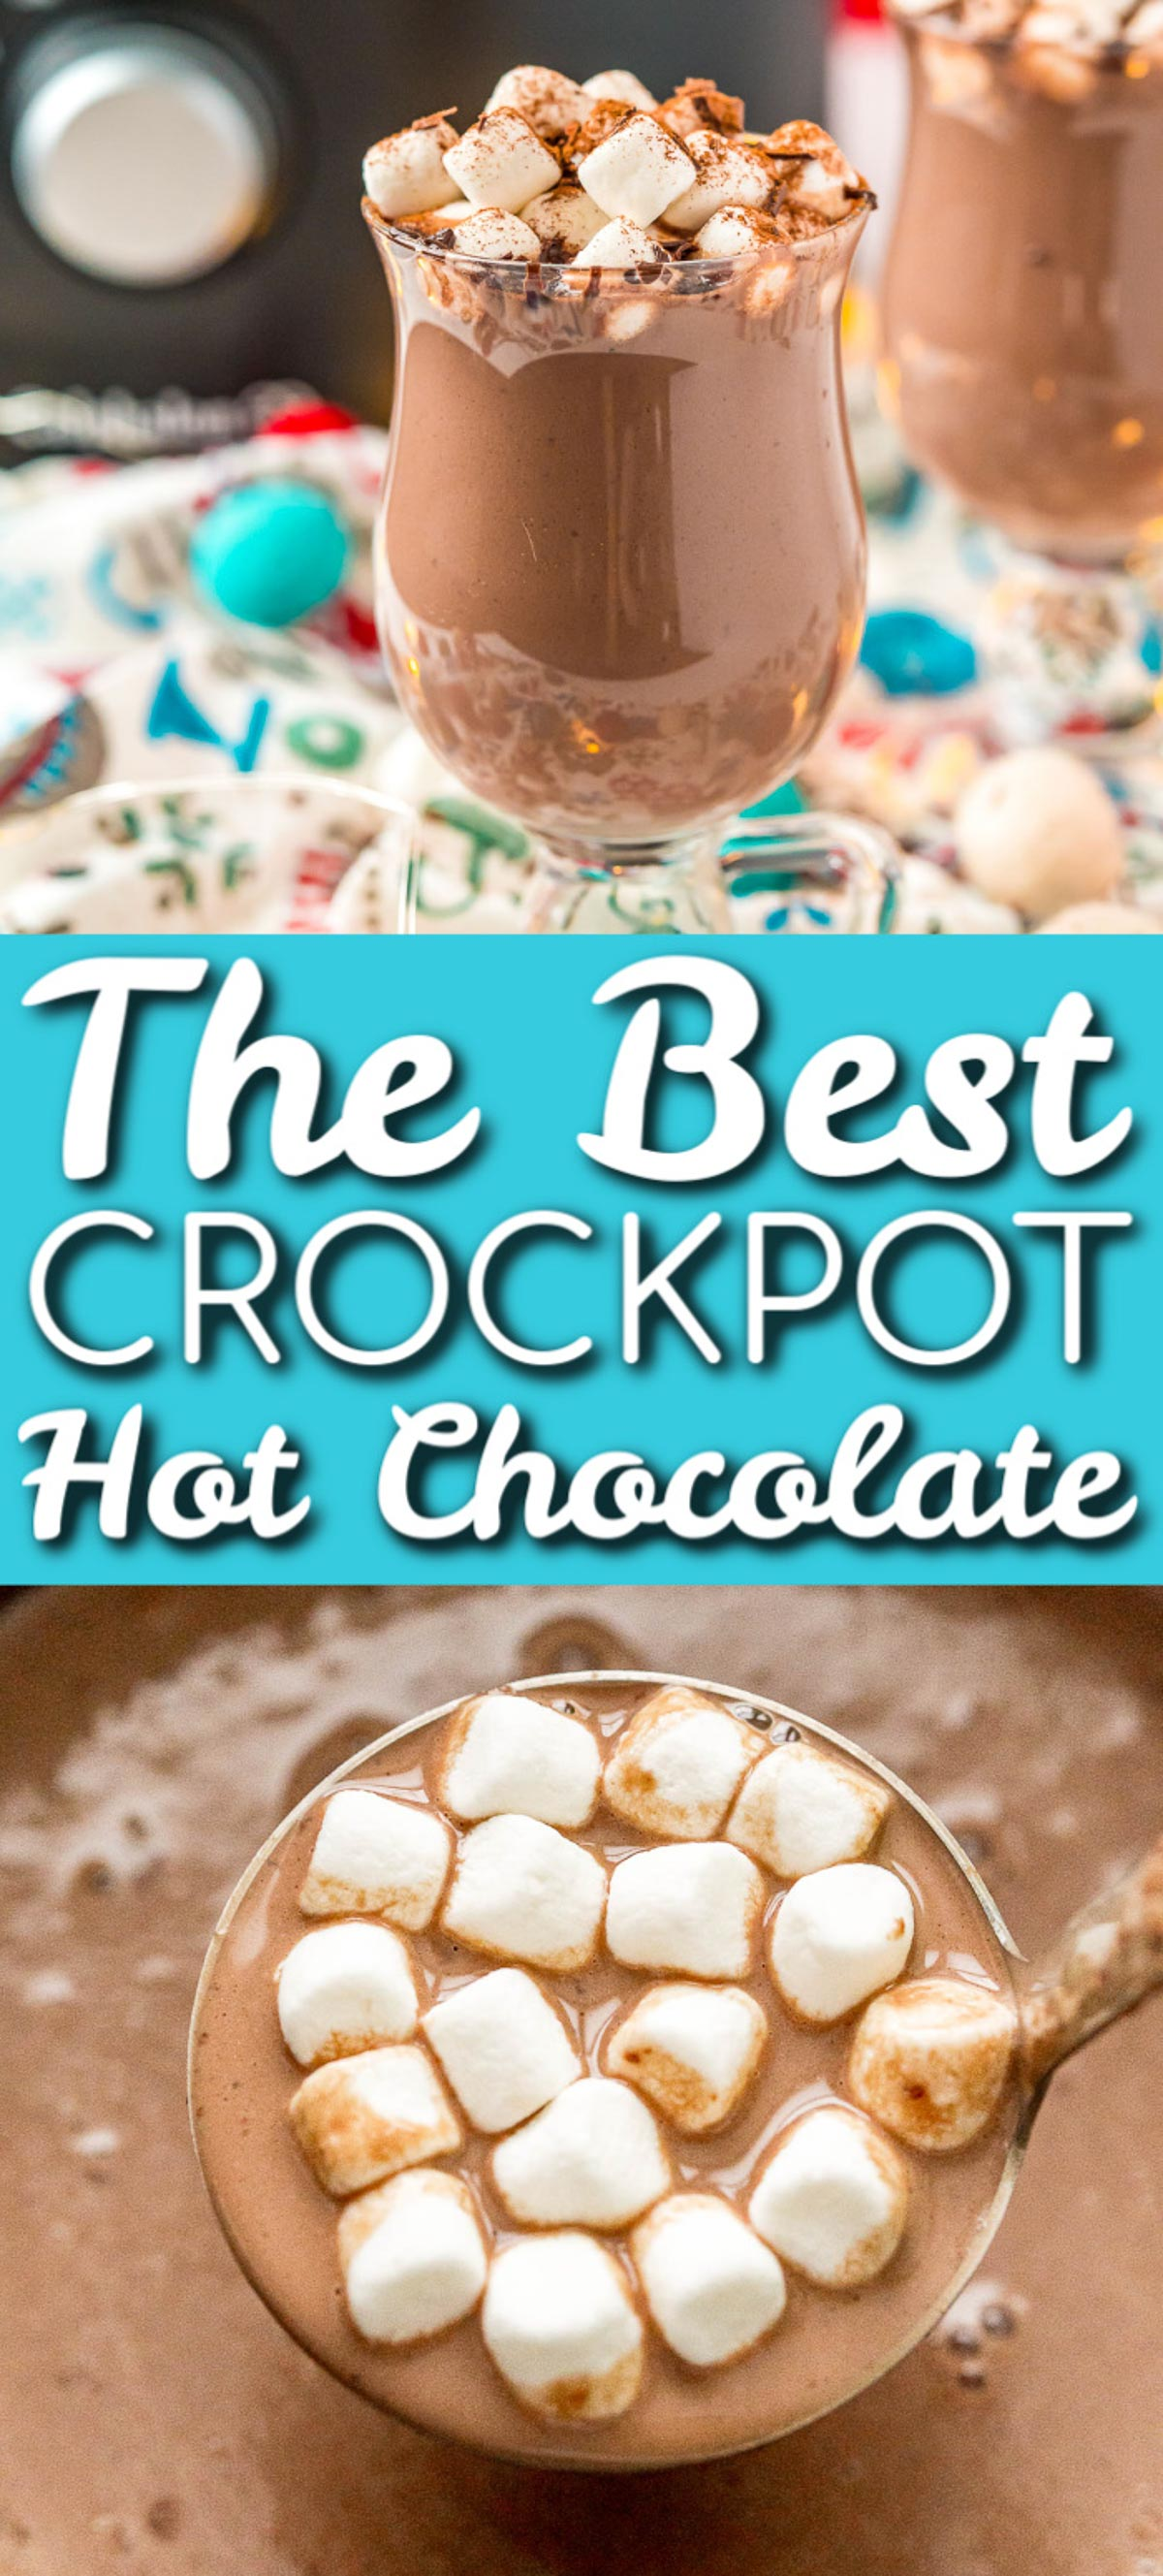 Crockpot Hot Chocolate is made with heavy cream, milk, sweetened condensed milk, chocolate, cocoa powder, and vanilla for the perfect hot drink for holiday parties and gatherings. via @sugarandsoulco